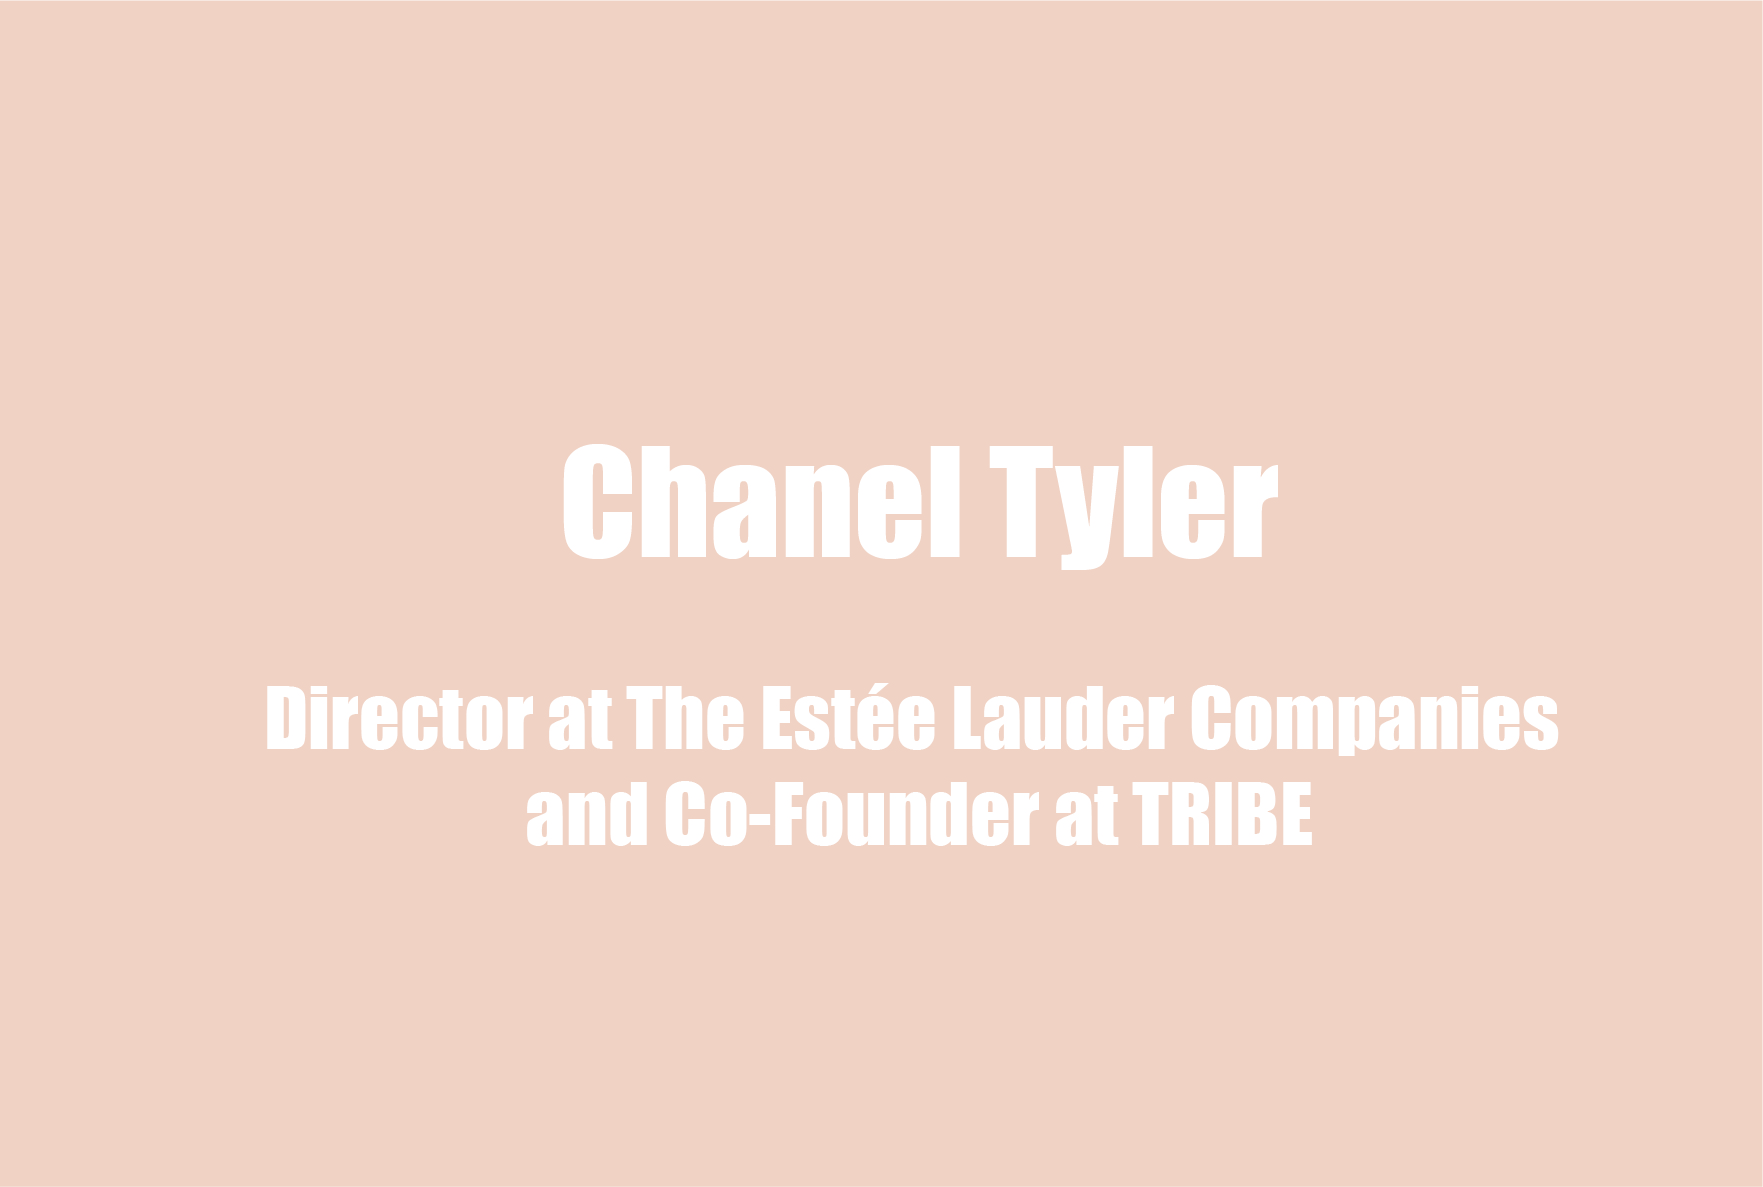 Chanel Tyler on Her Mental Health & Wellness Regimen, Diversity, Tokenizing the Black Community, and Communal Empowerment